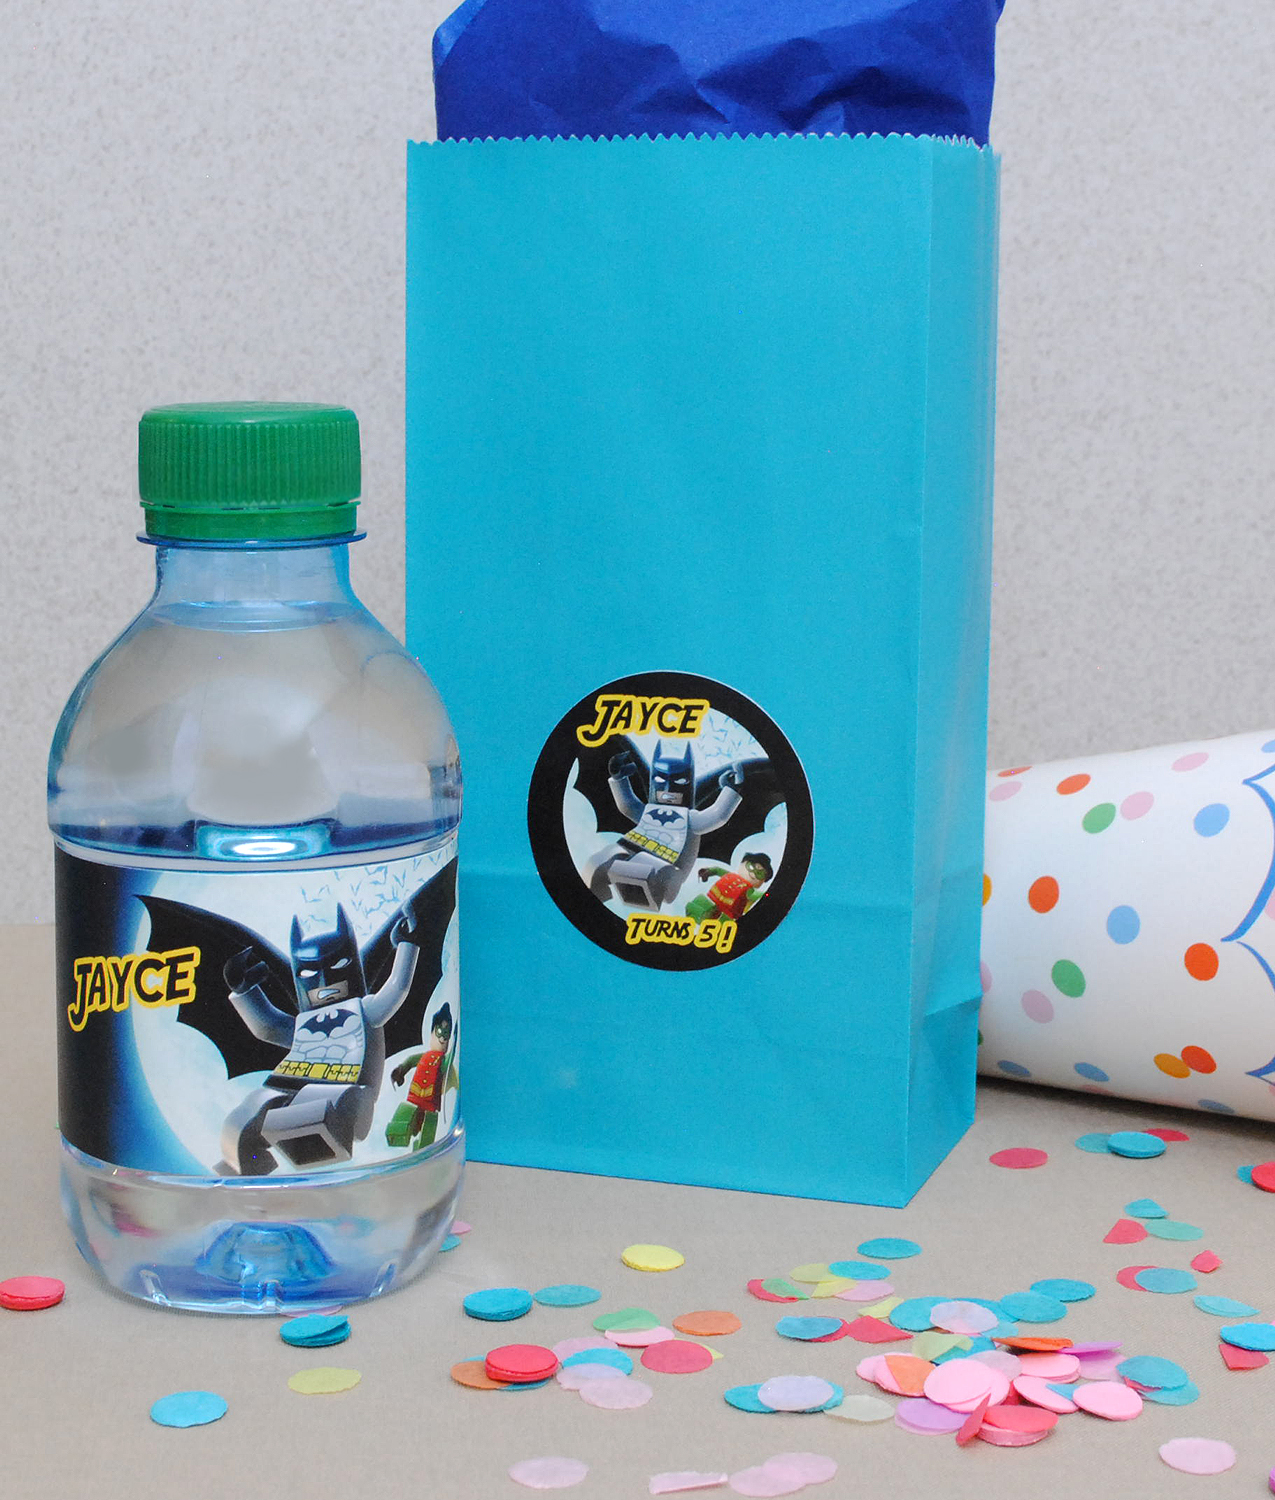 Lego Batman and Robin party favor stickers. Make your own birthday stickers using the character your child likes.